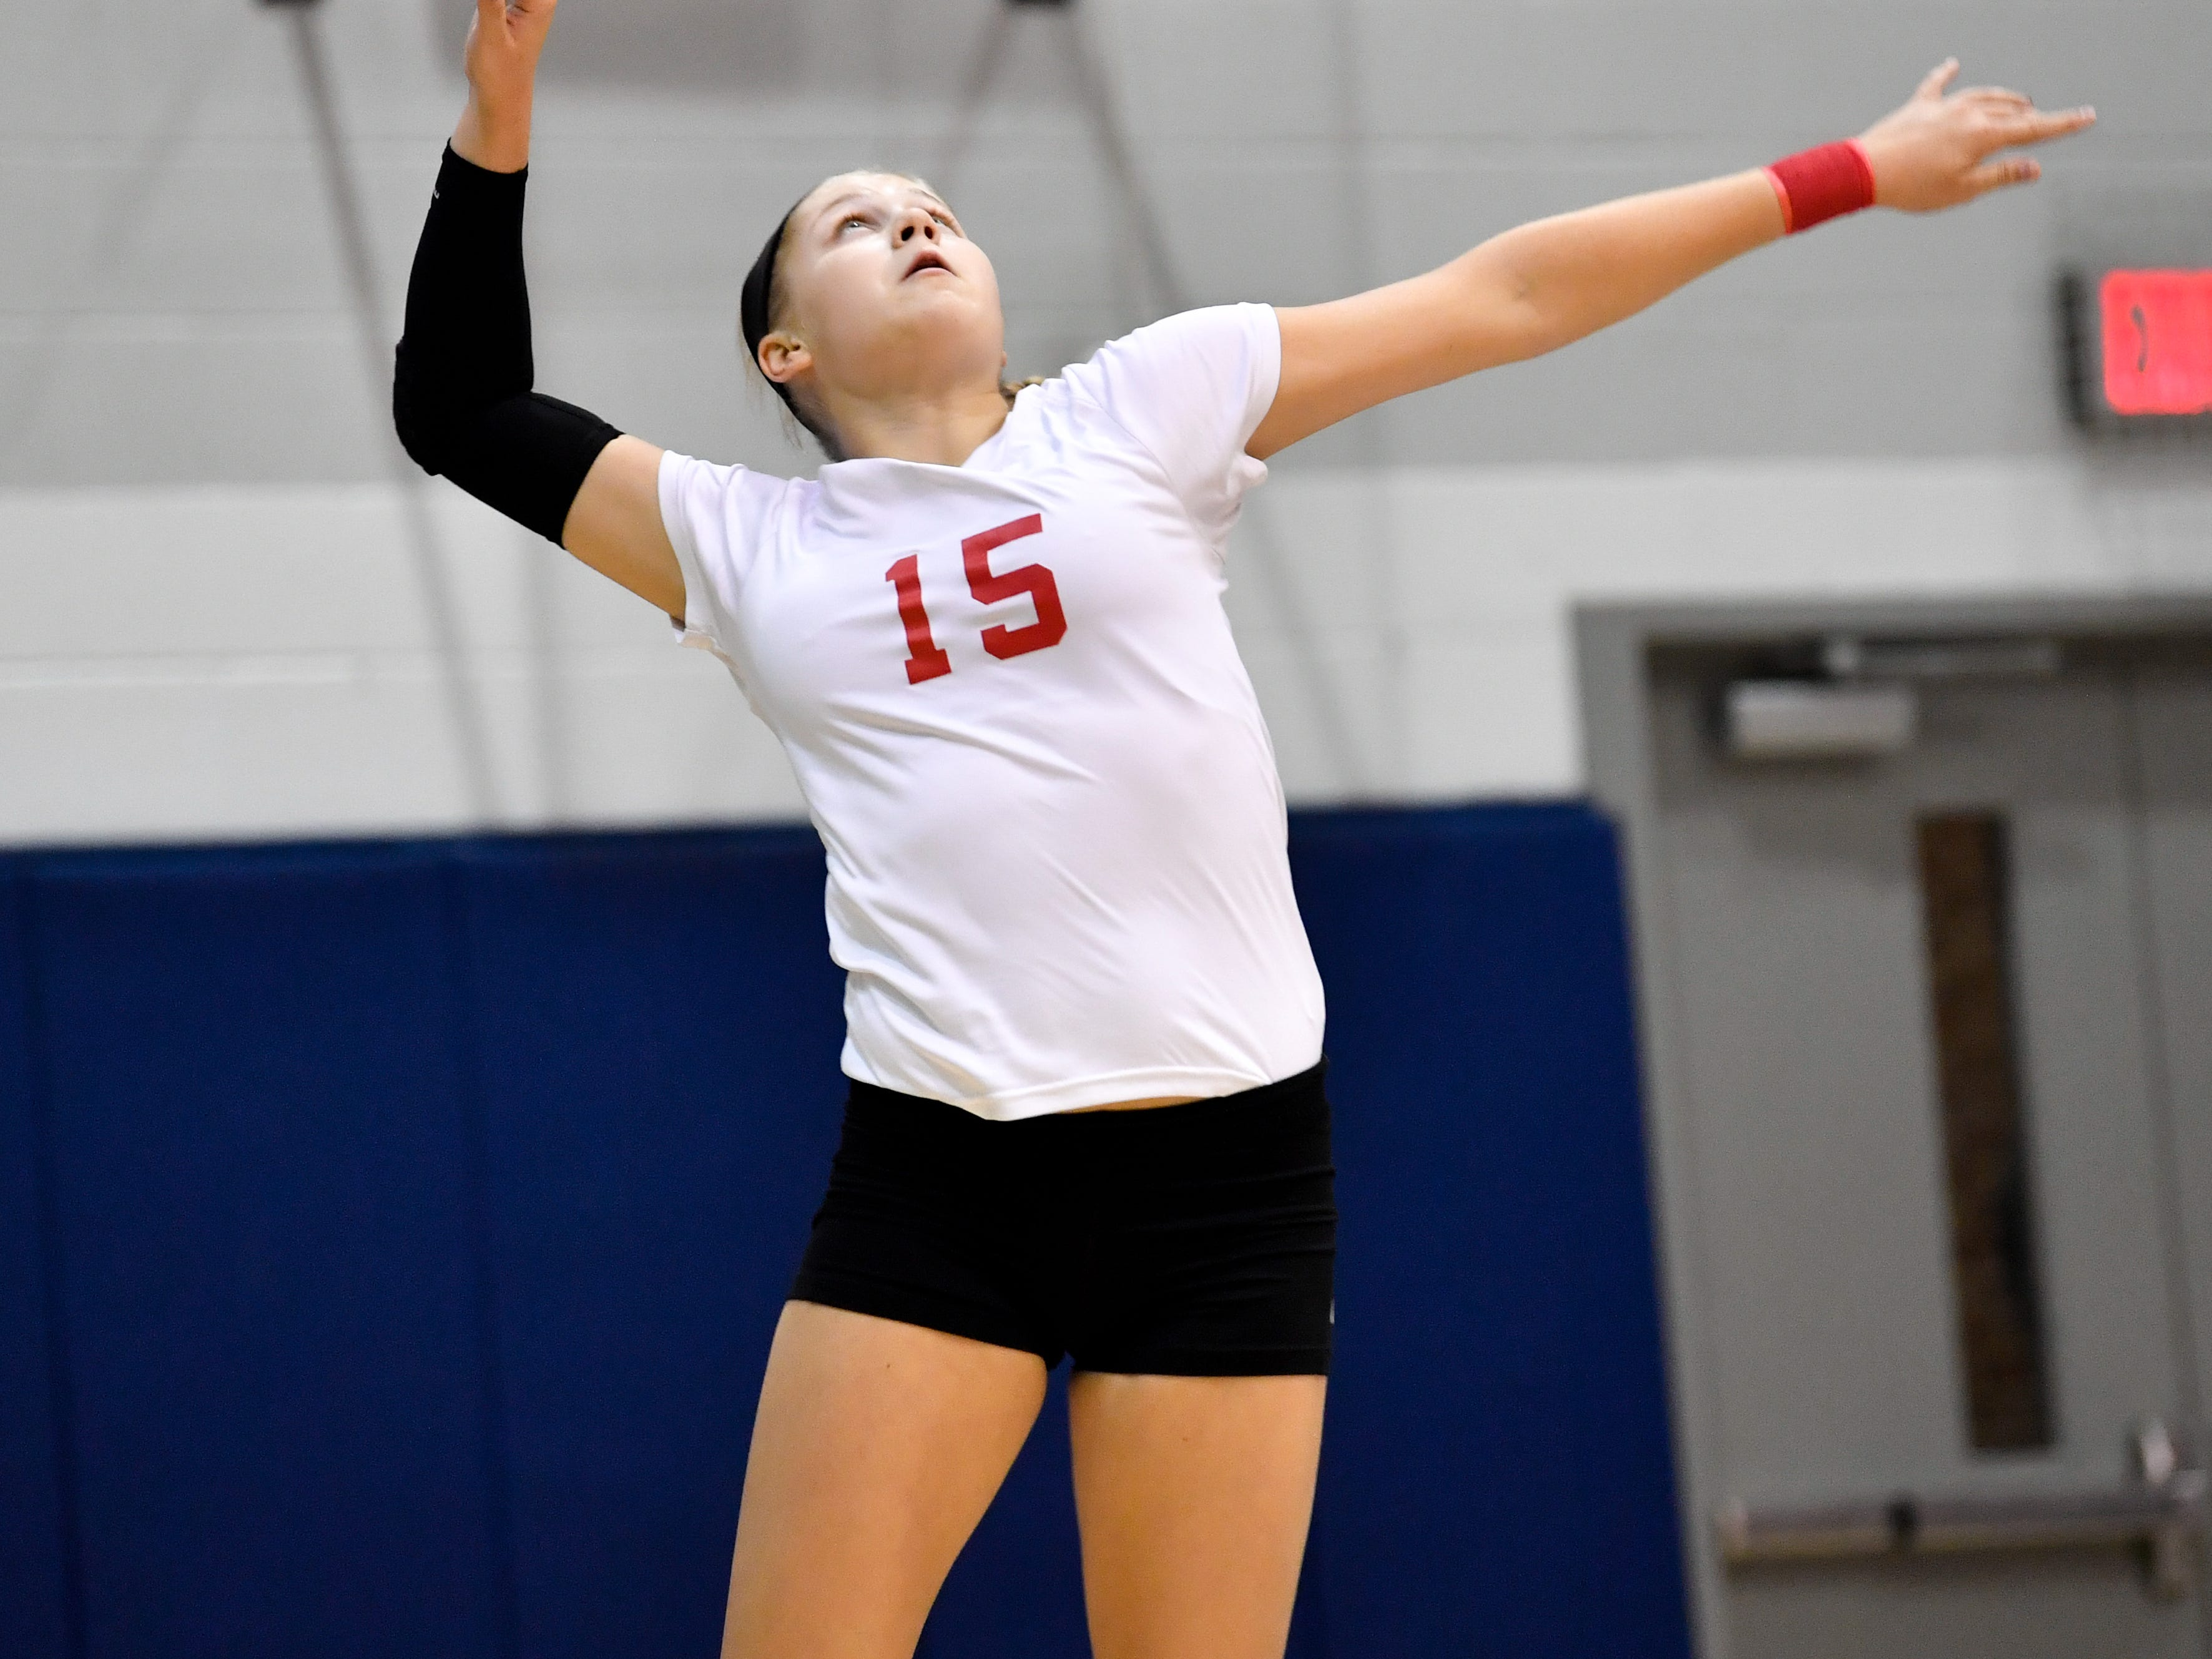 Abby Diehl (15) serves the ball during the YAIAA league volleyball tournament semifinals between West York and Dover, Tuesday, October 23, 2018. The Bulldogs defeated the Eagles 3-1.